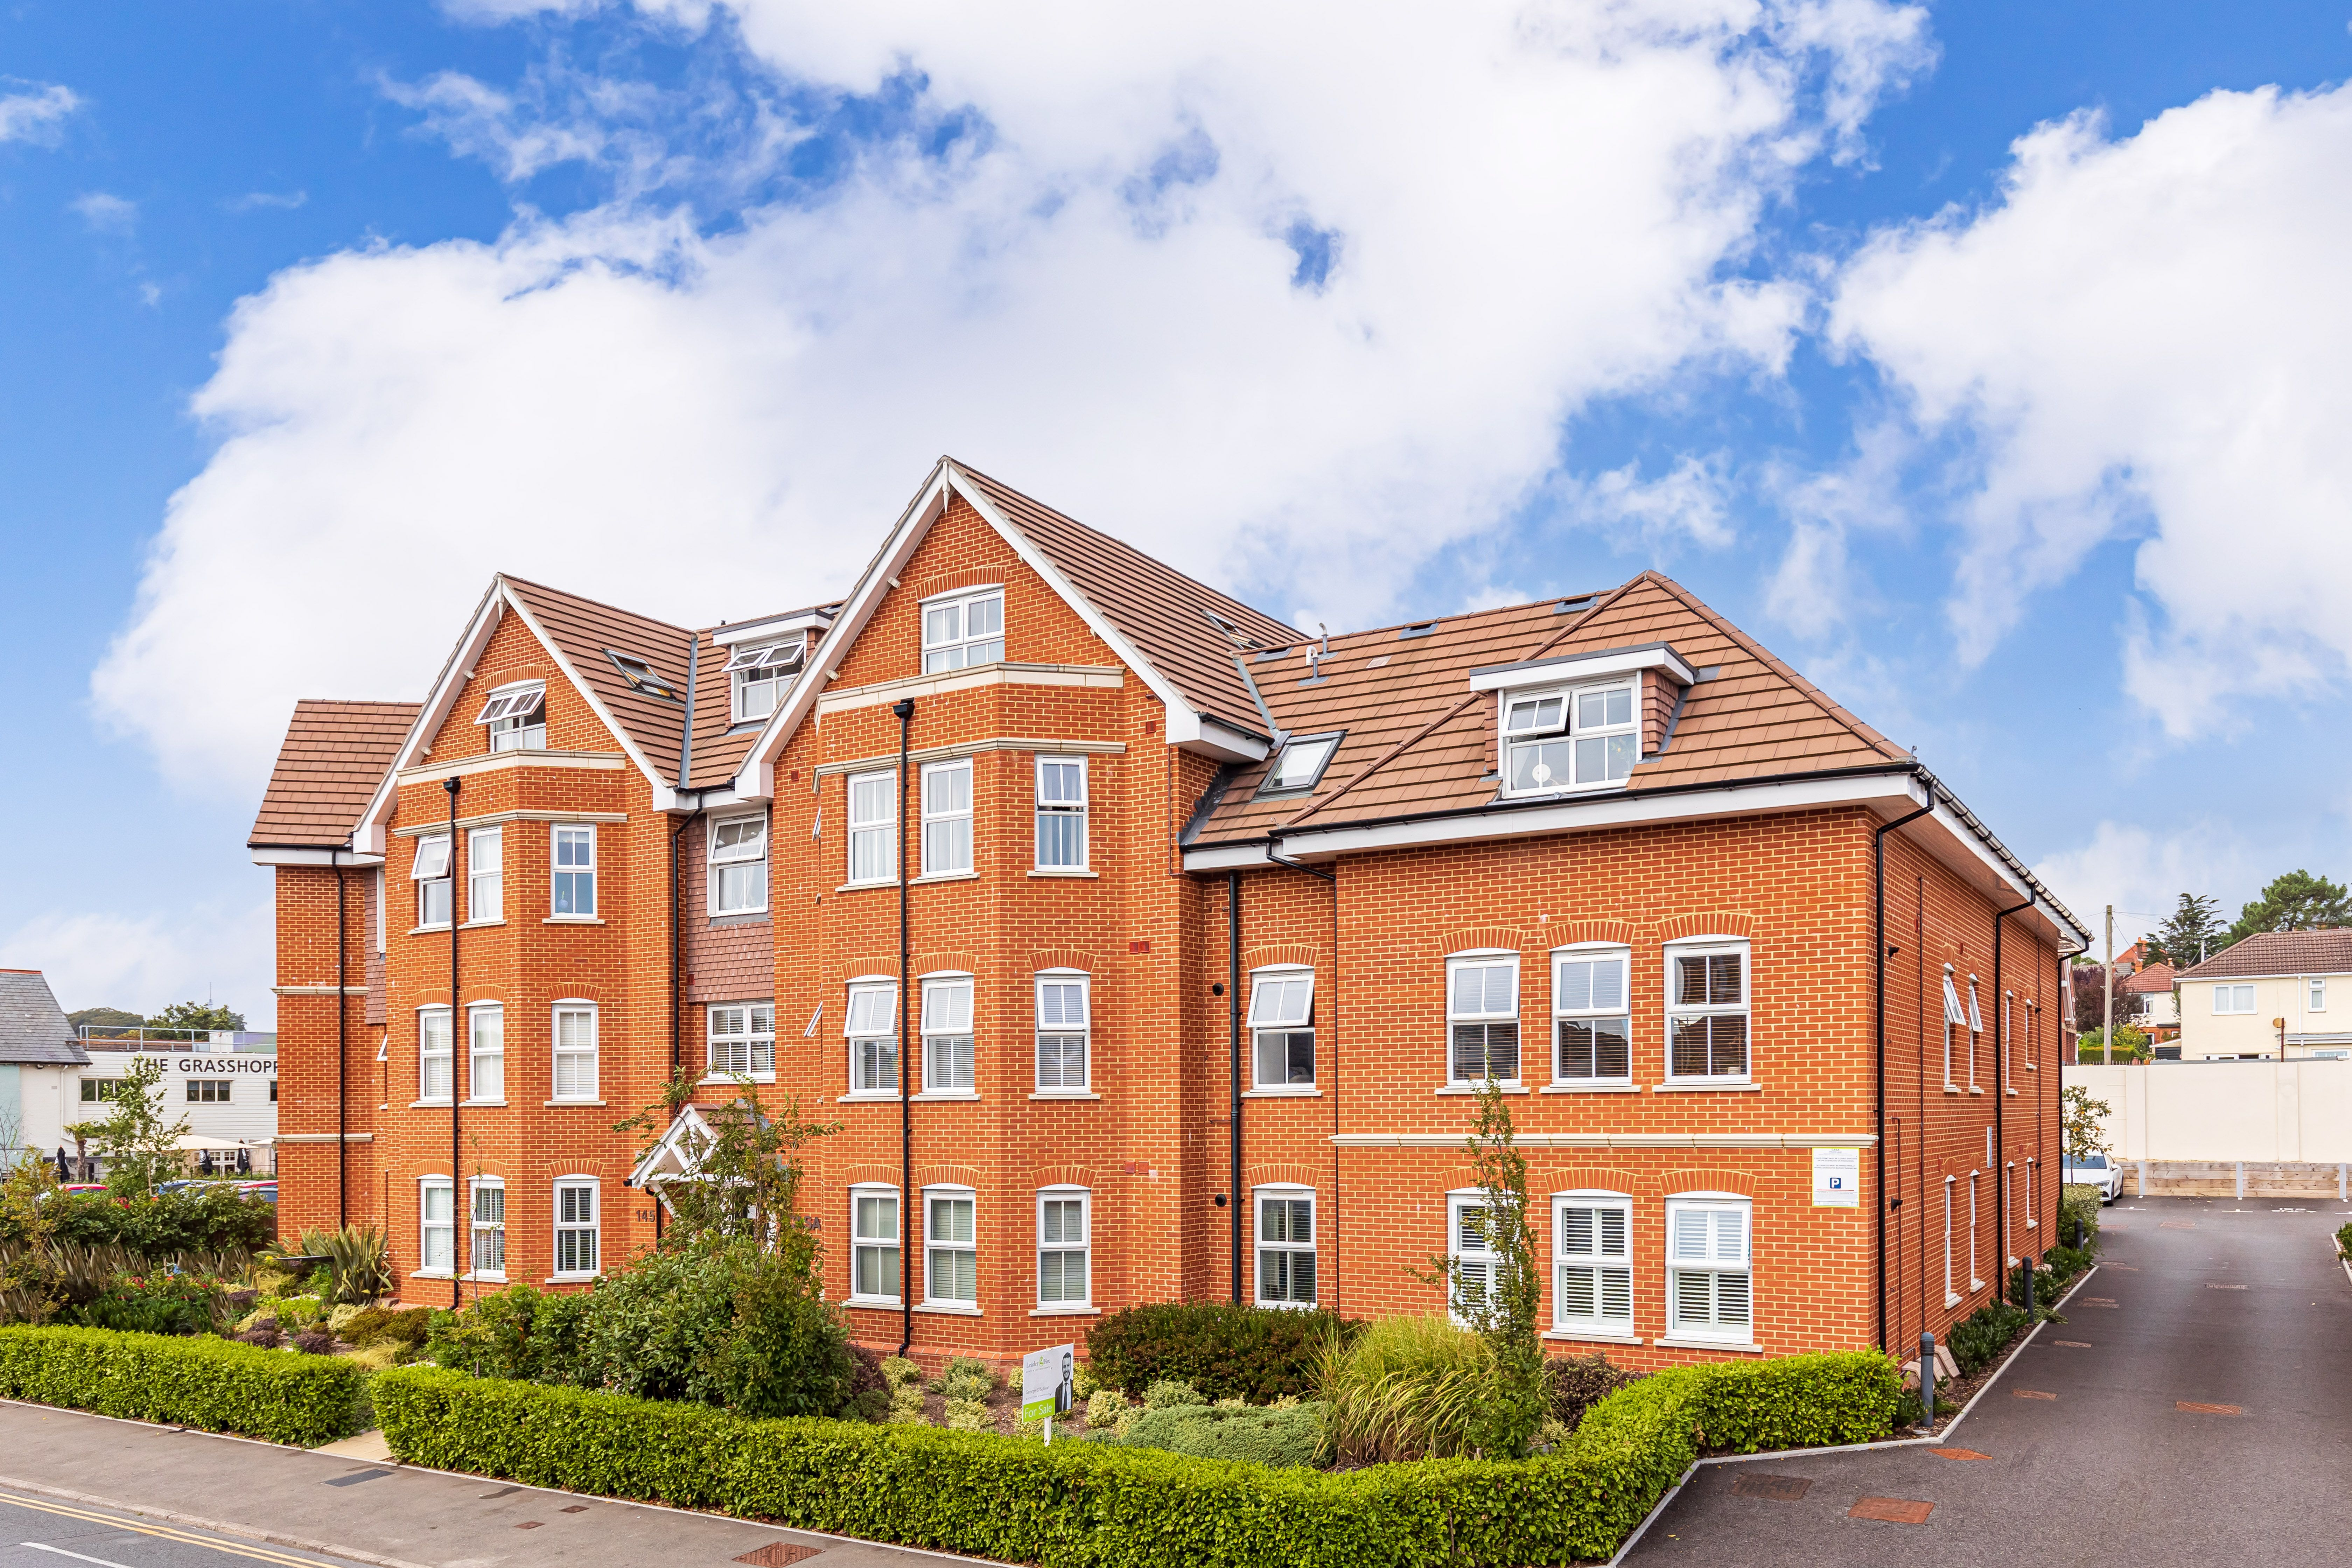 Ideal market entry for first time buyers! Beautiful one bedroom apartment with parking in the ever popular BH14 postcode!